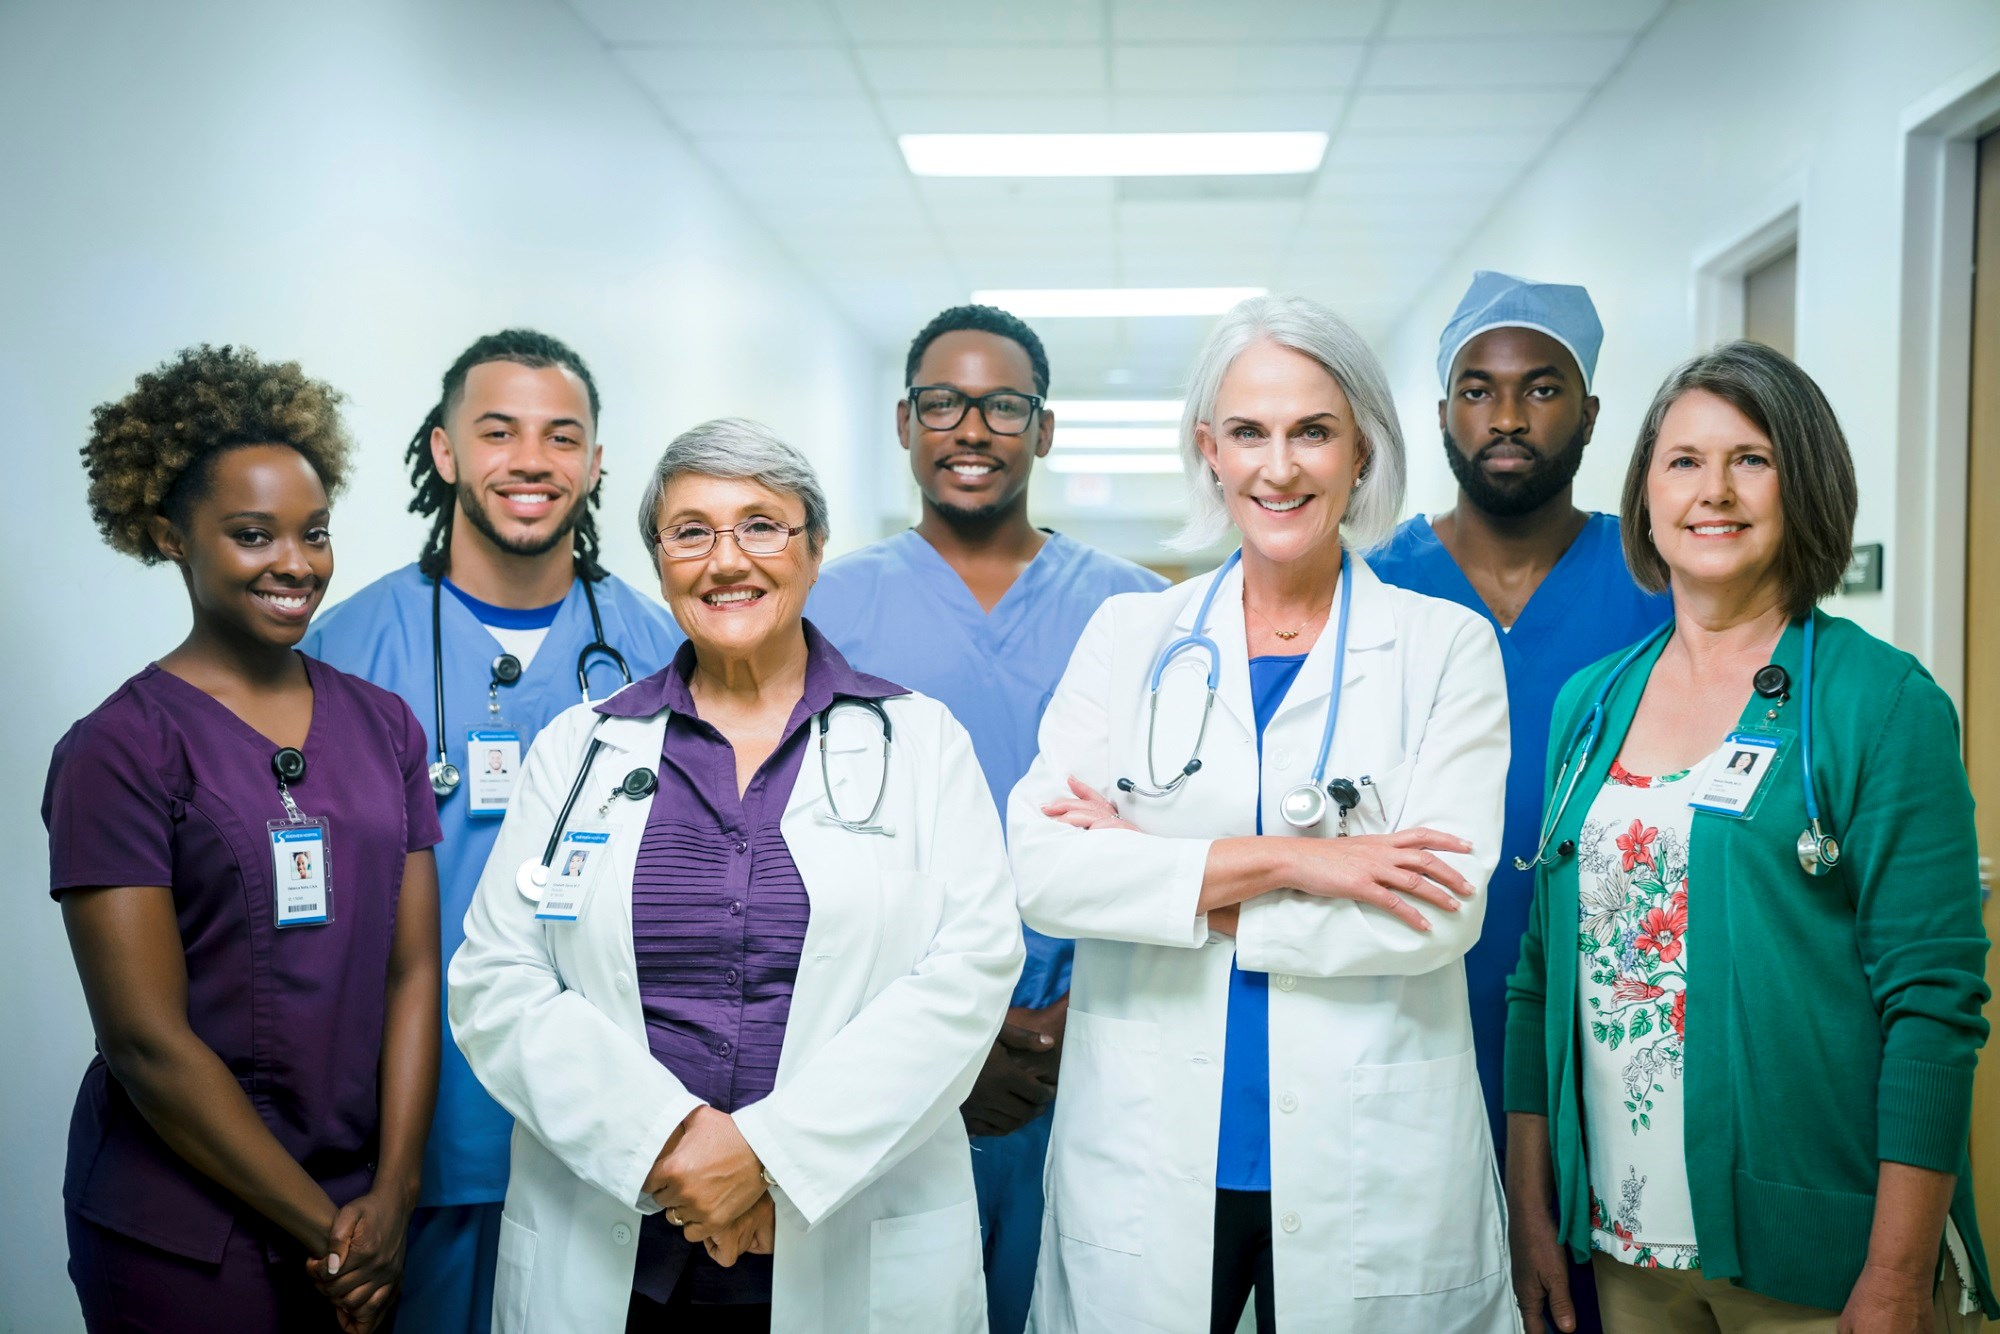 The Striking Effects of Diversity in Health Care: Improving Patient Outcomes